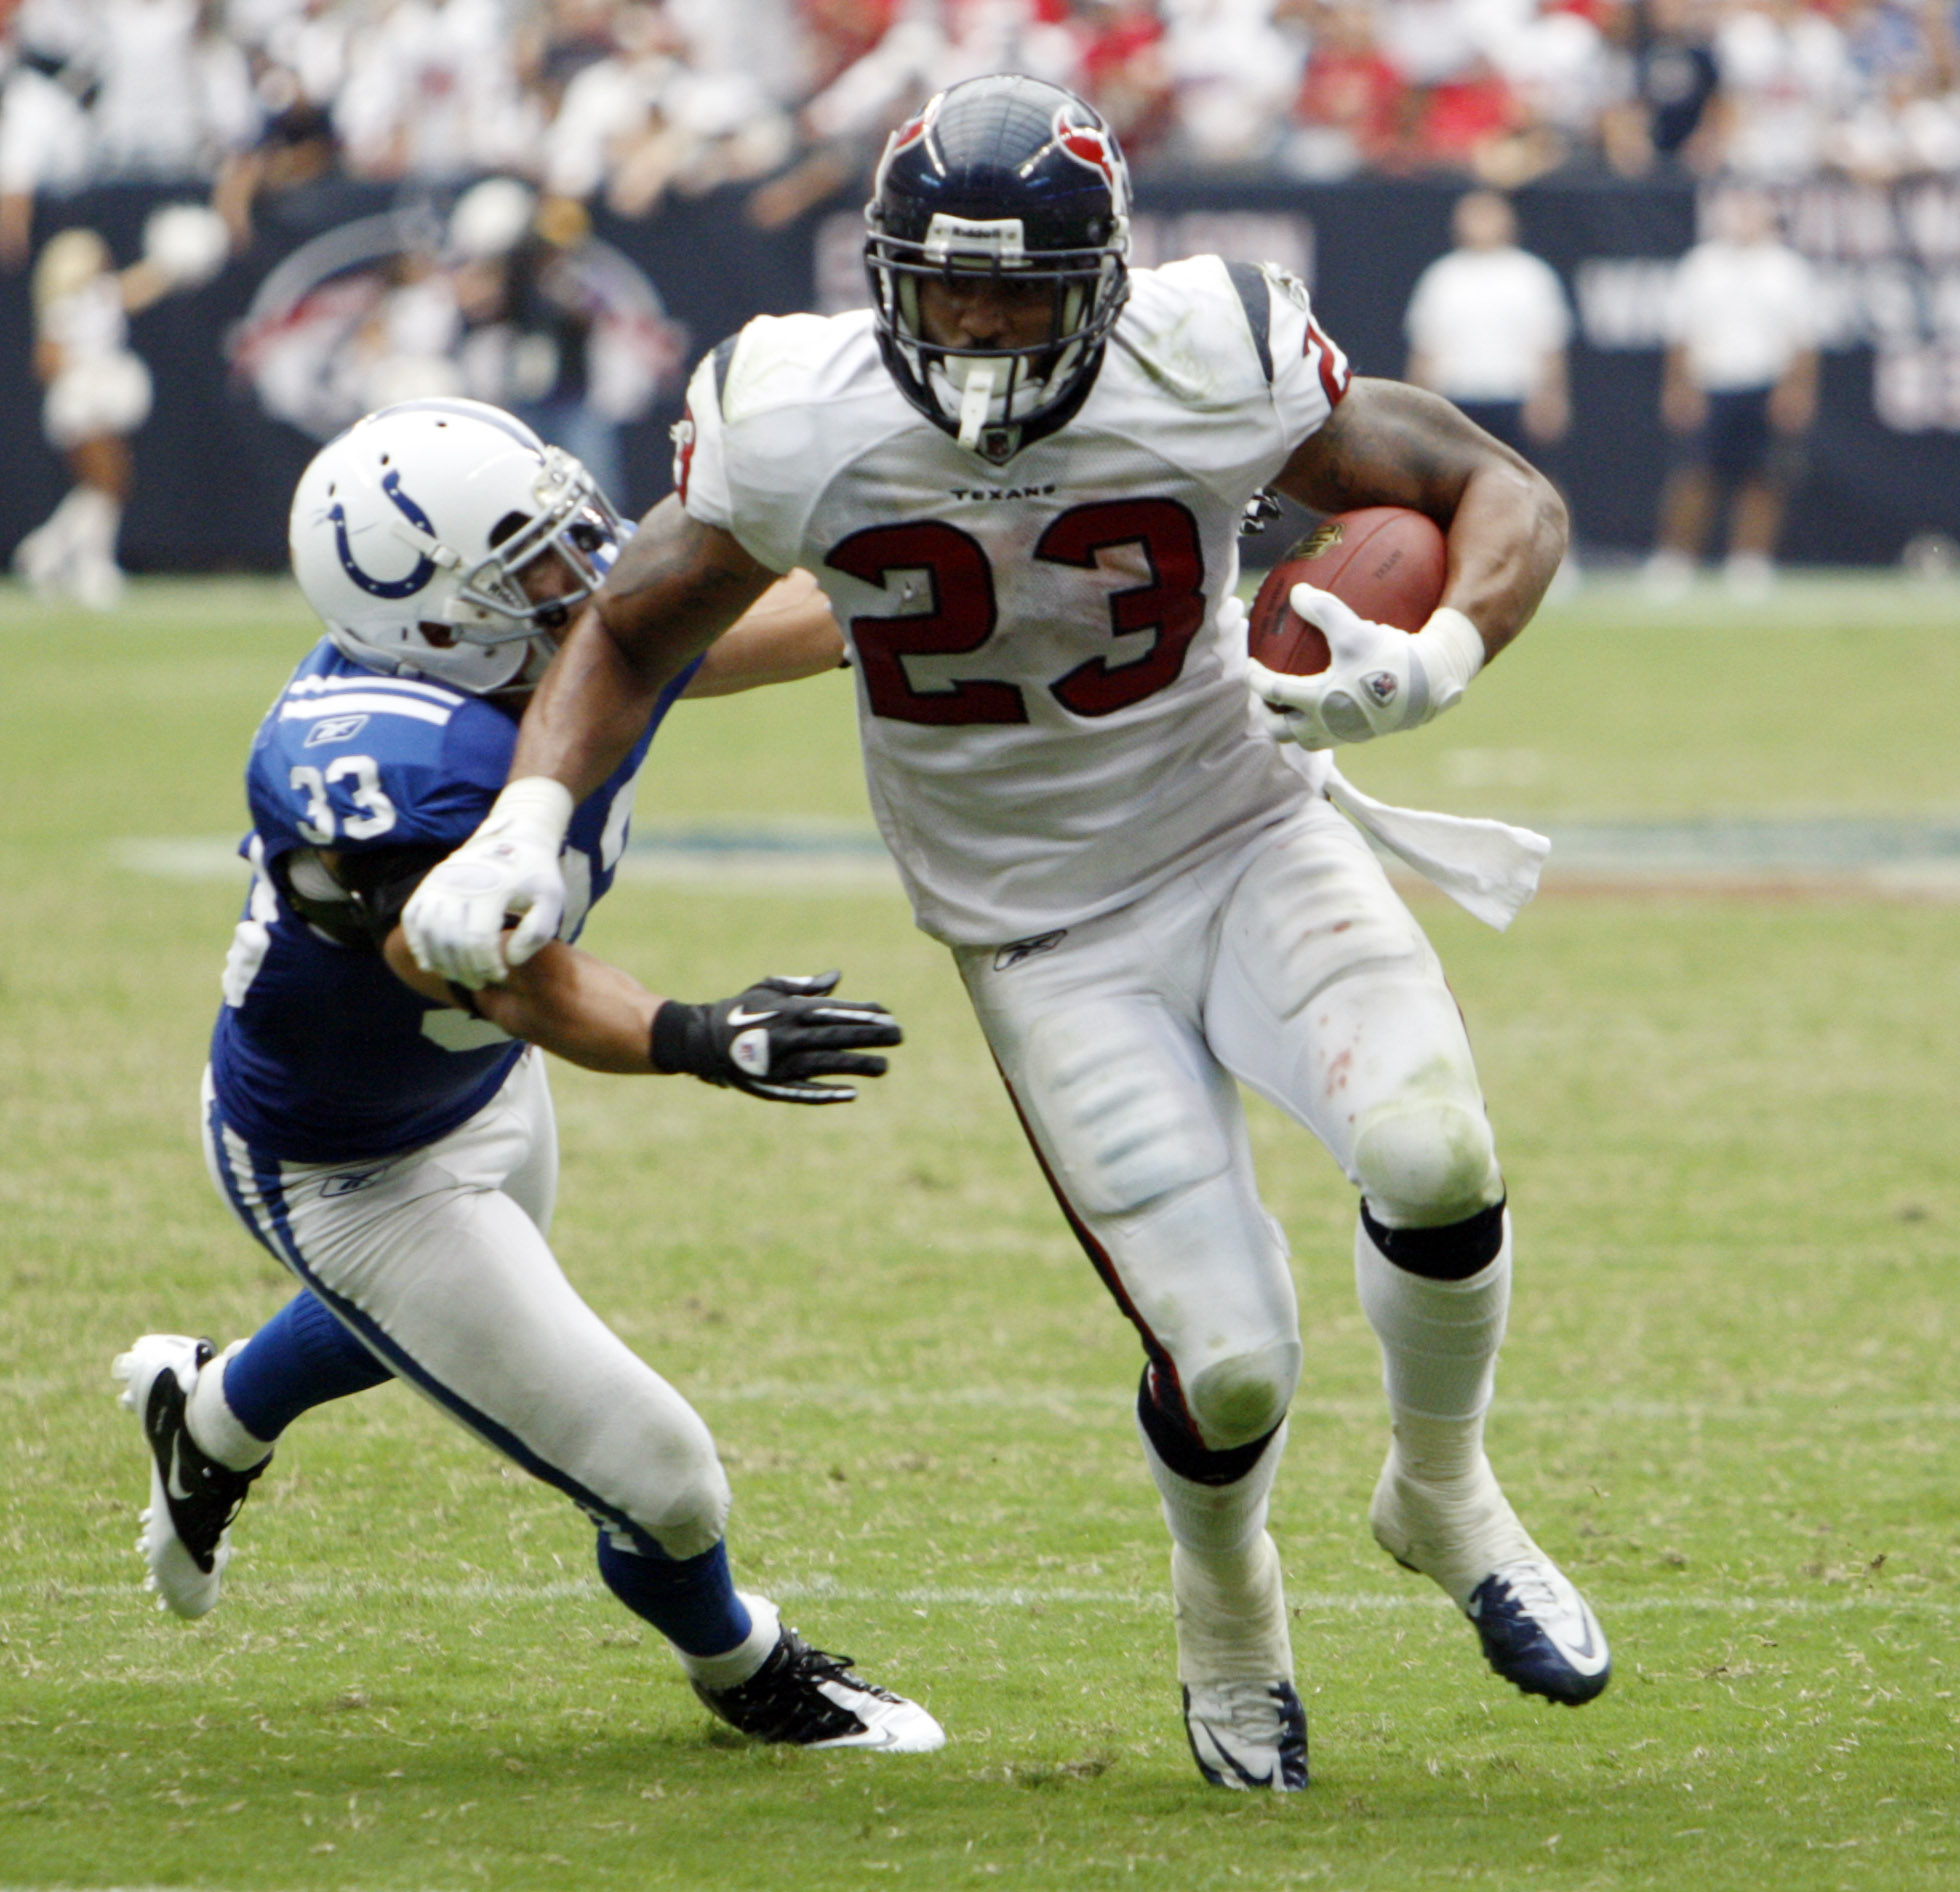 HOUSTON - SEPTEMBER 12:  Running back Arian Foster #23 of the Houston Texans avoids a tackle by defensive back Melivn Bullitt #33 of the Indianapolis Colts during the NFL season opener at Reliant Stadium on September 12, 2010 in Houston, Texas.  (Photo by